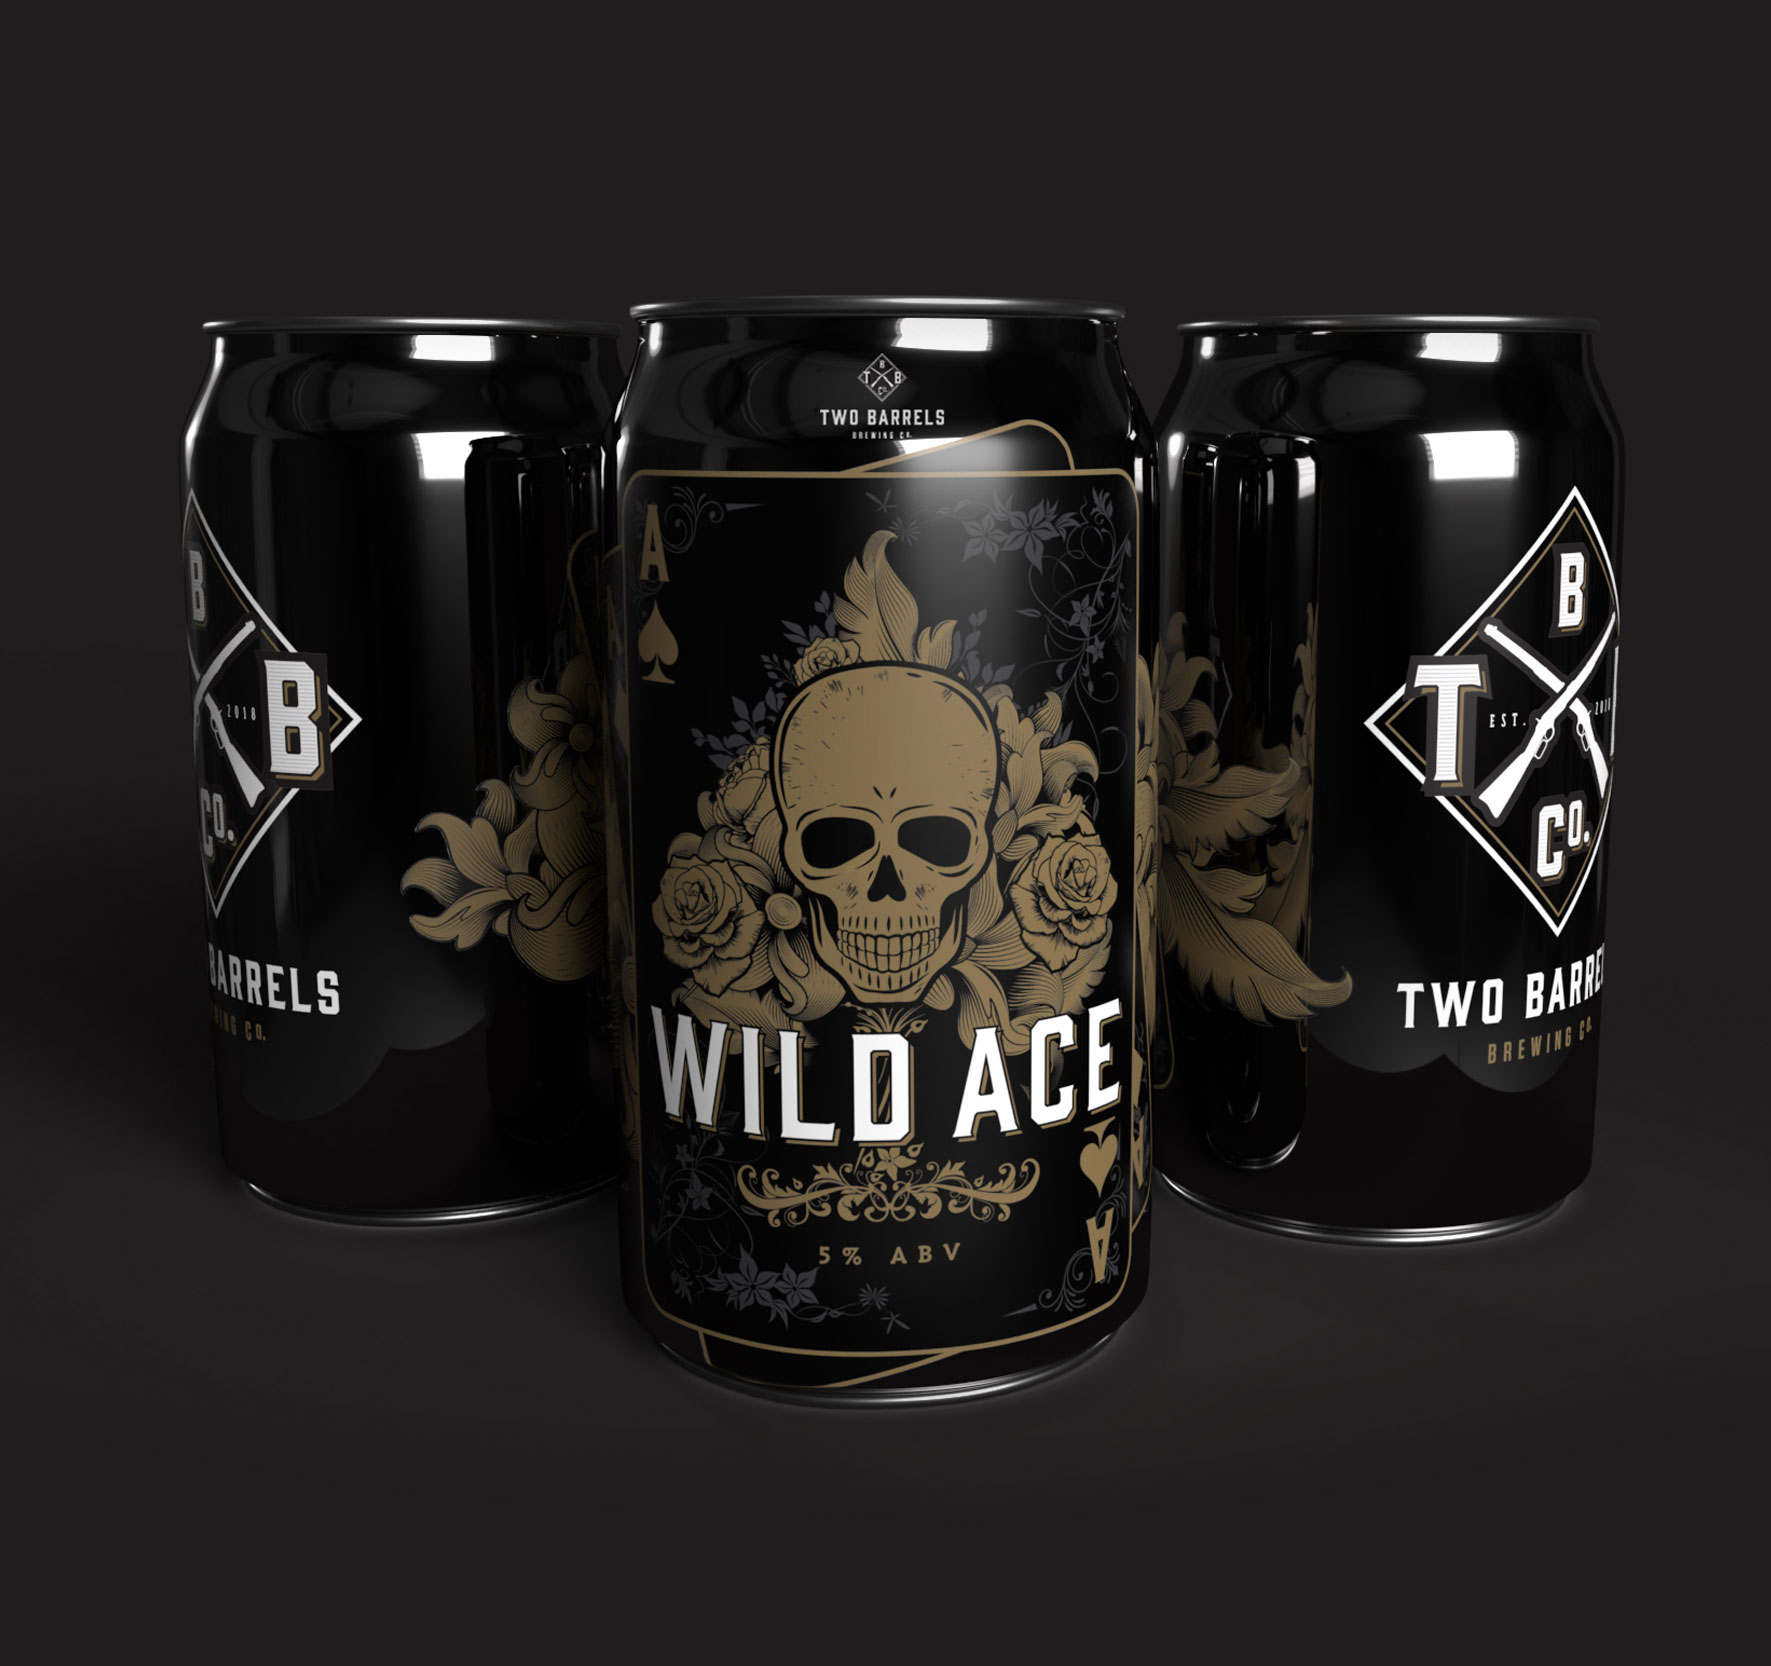 Two Barrels Wild Ace Craft Beer cans